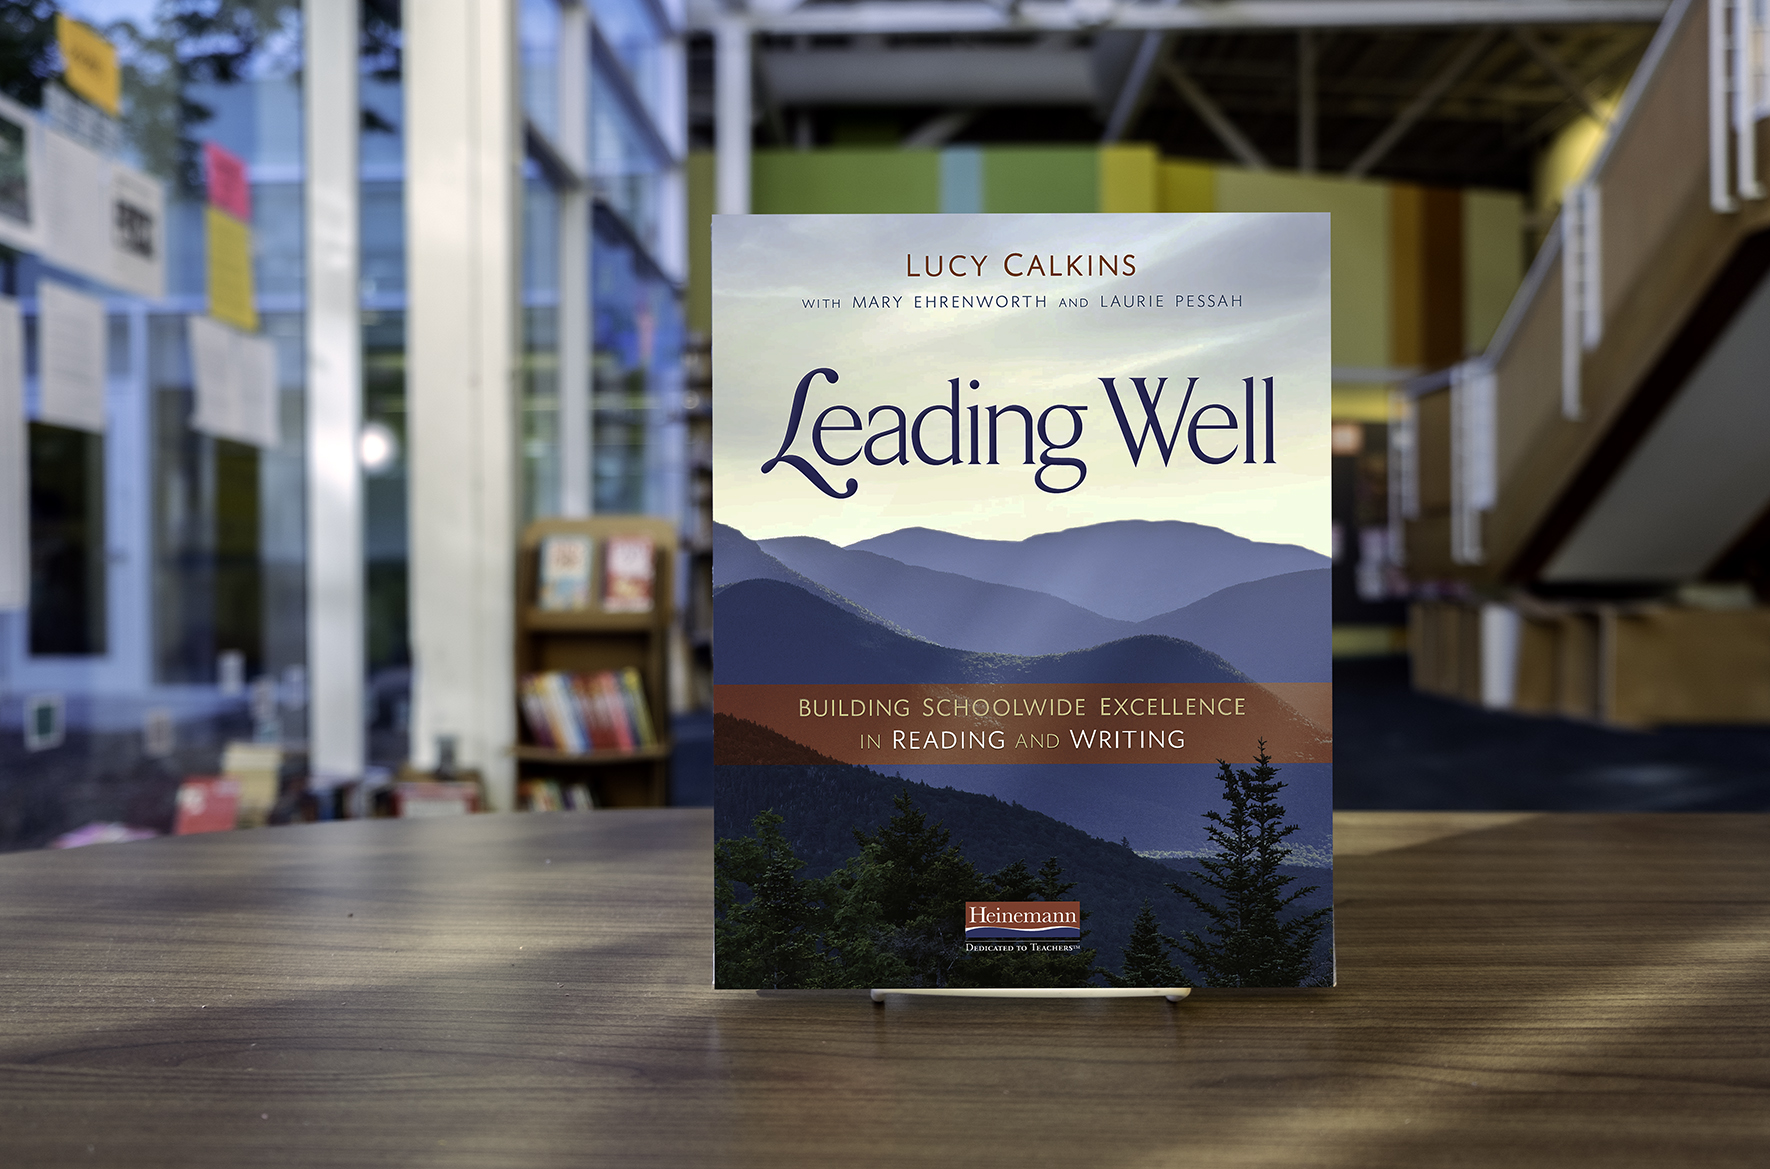 Leading-Well-book-in-the-wild_6684